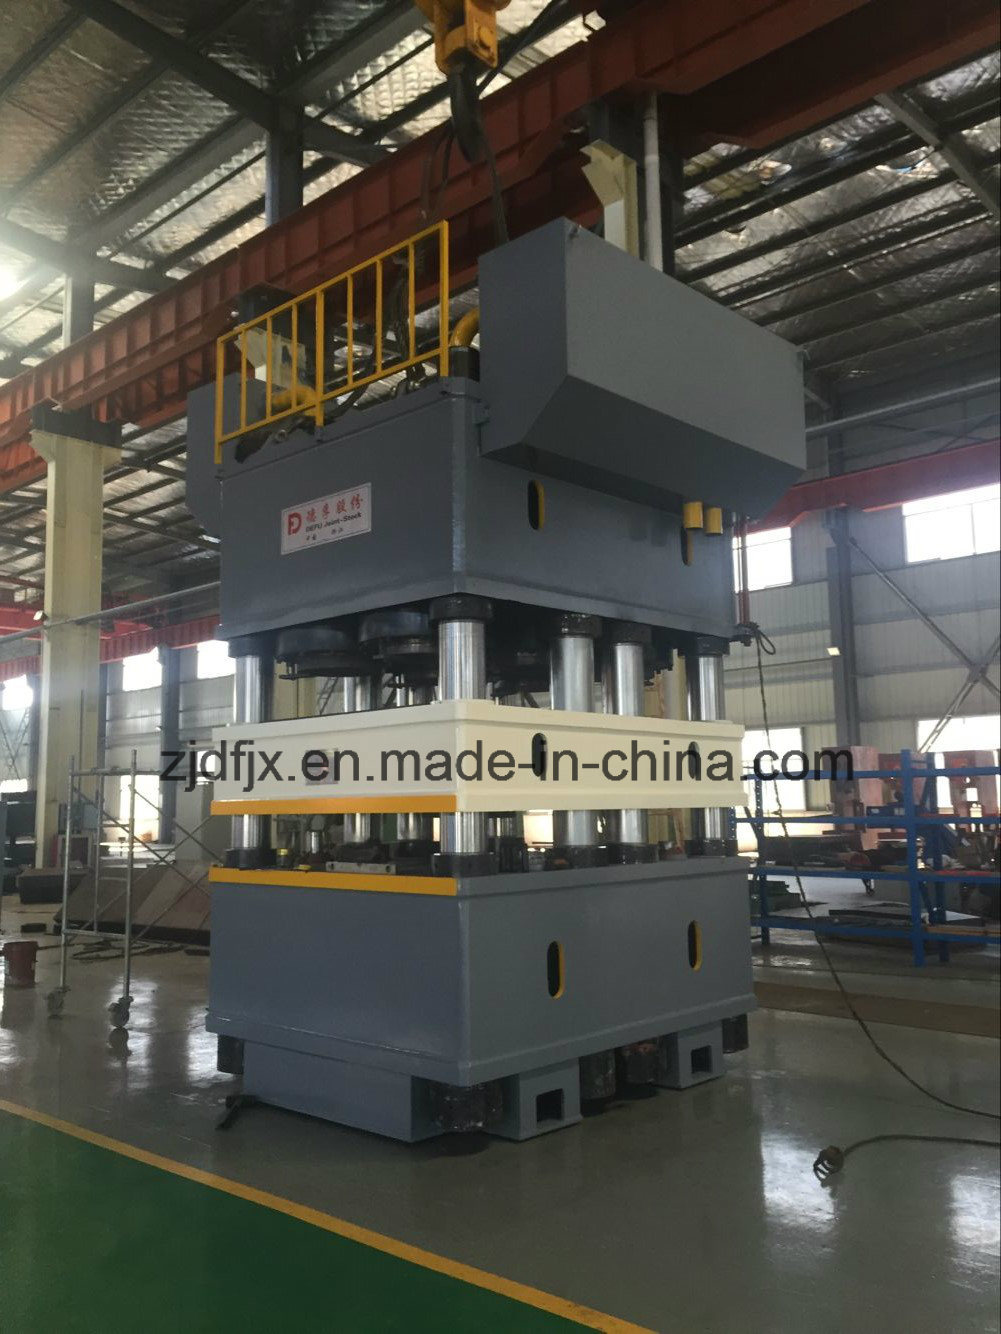 Hydraulic Press Machine for Metal Door